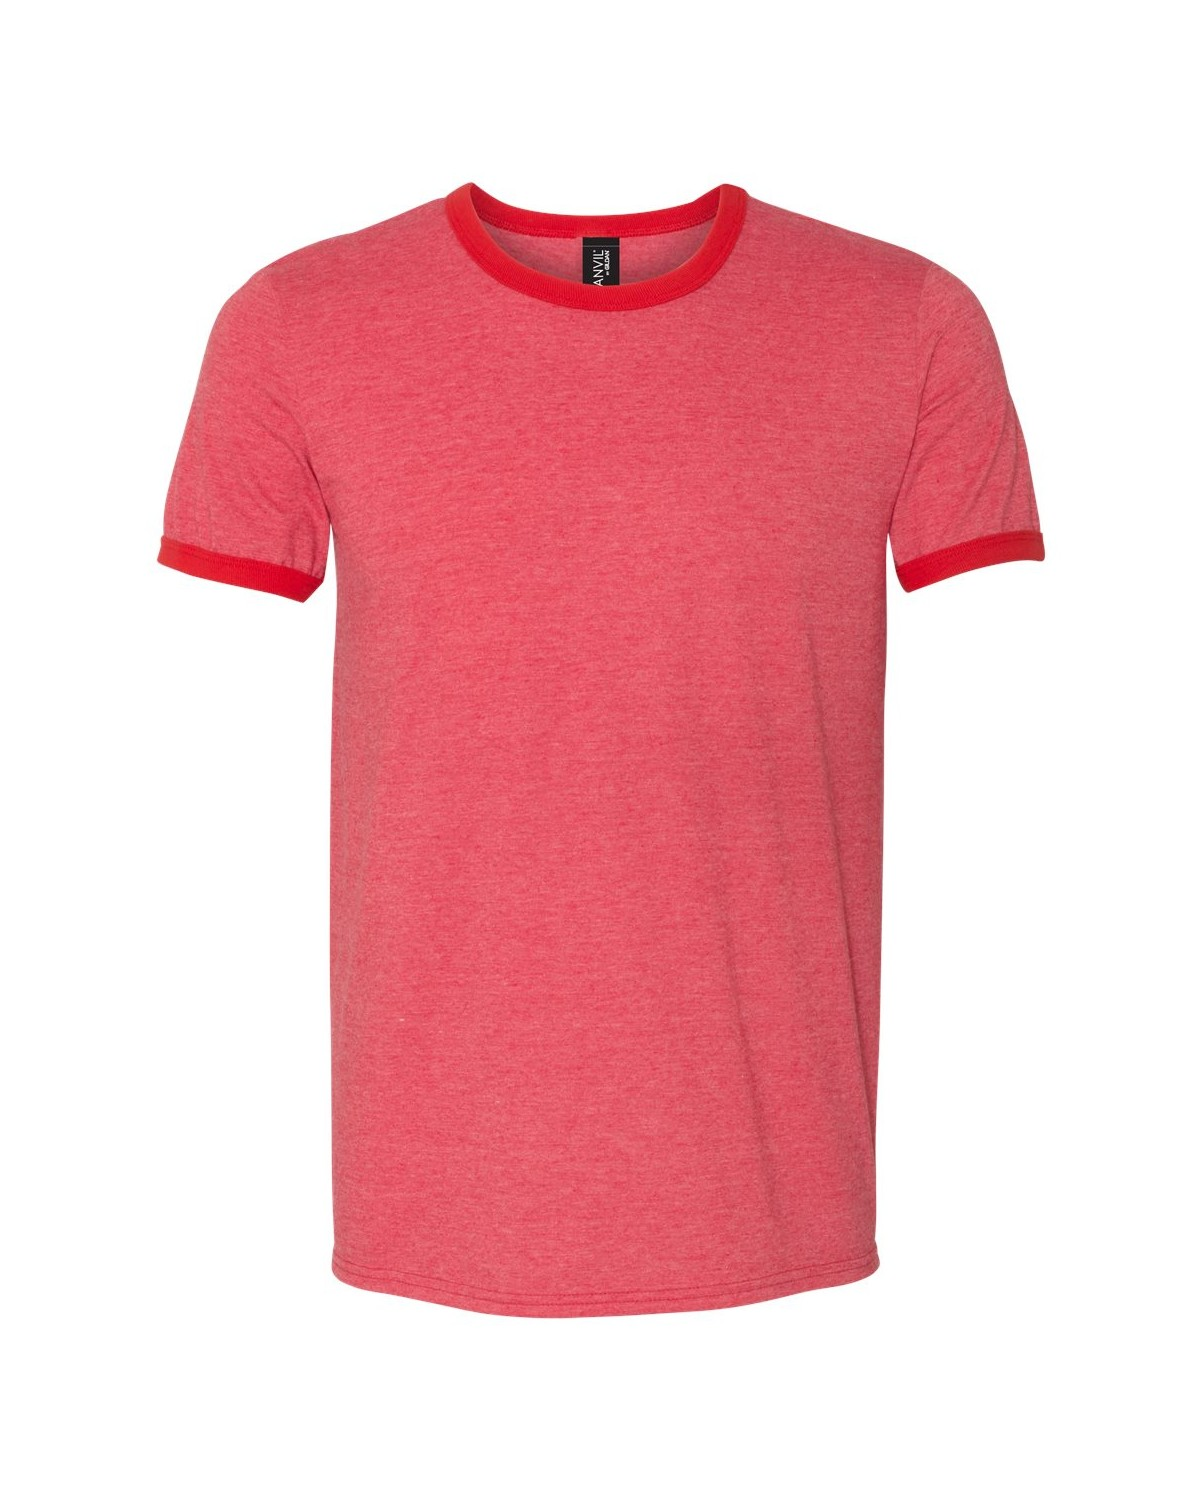 988 Anvil Heather Red/ Red